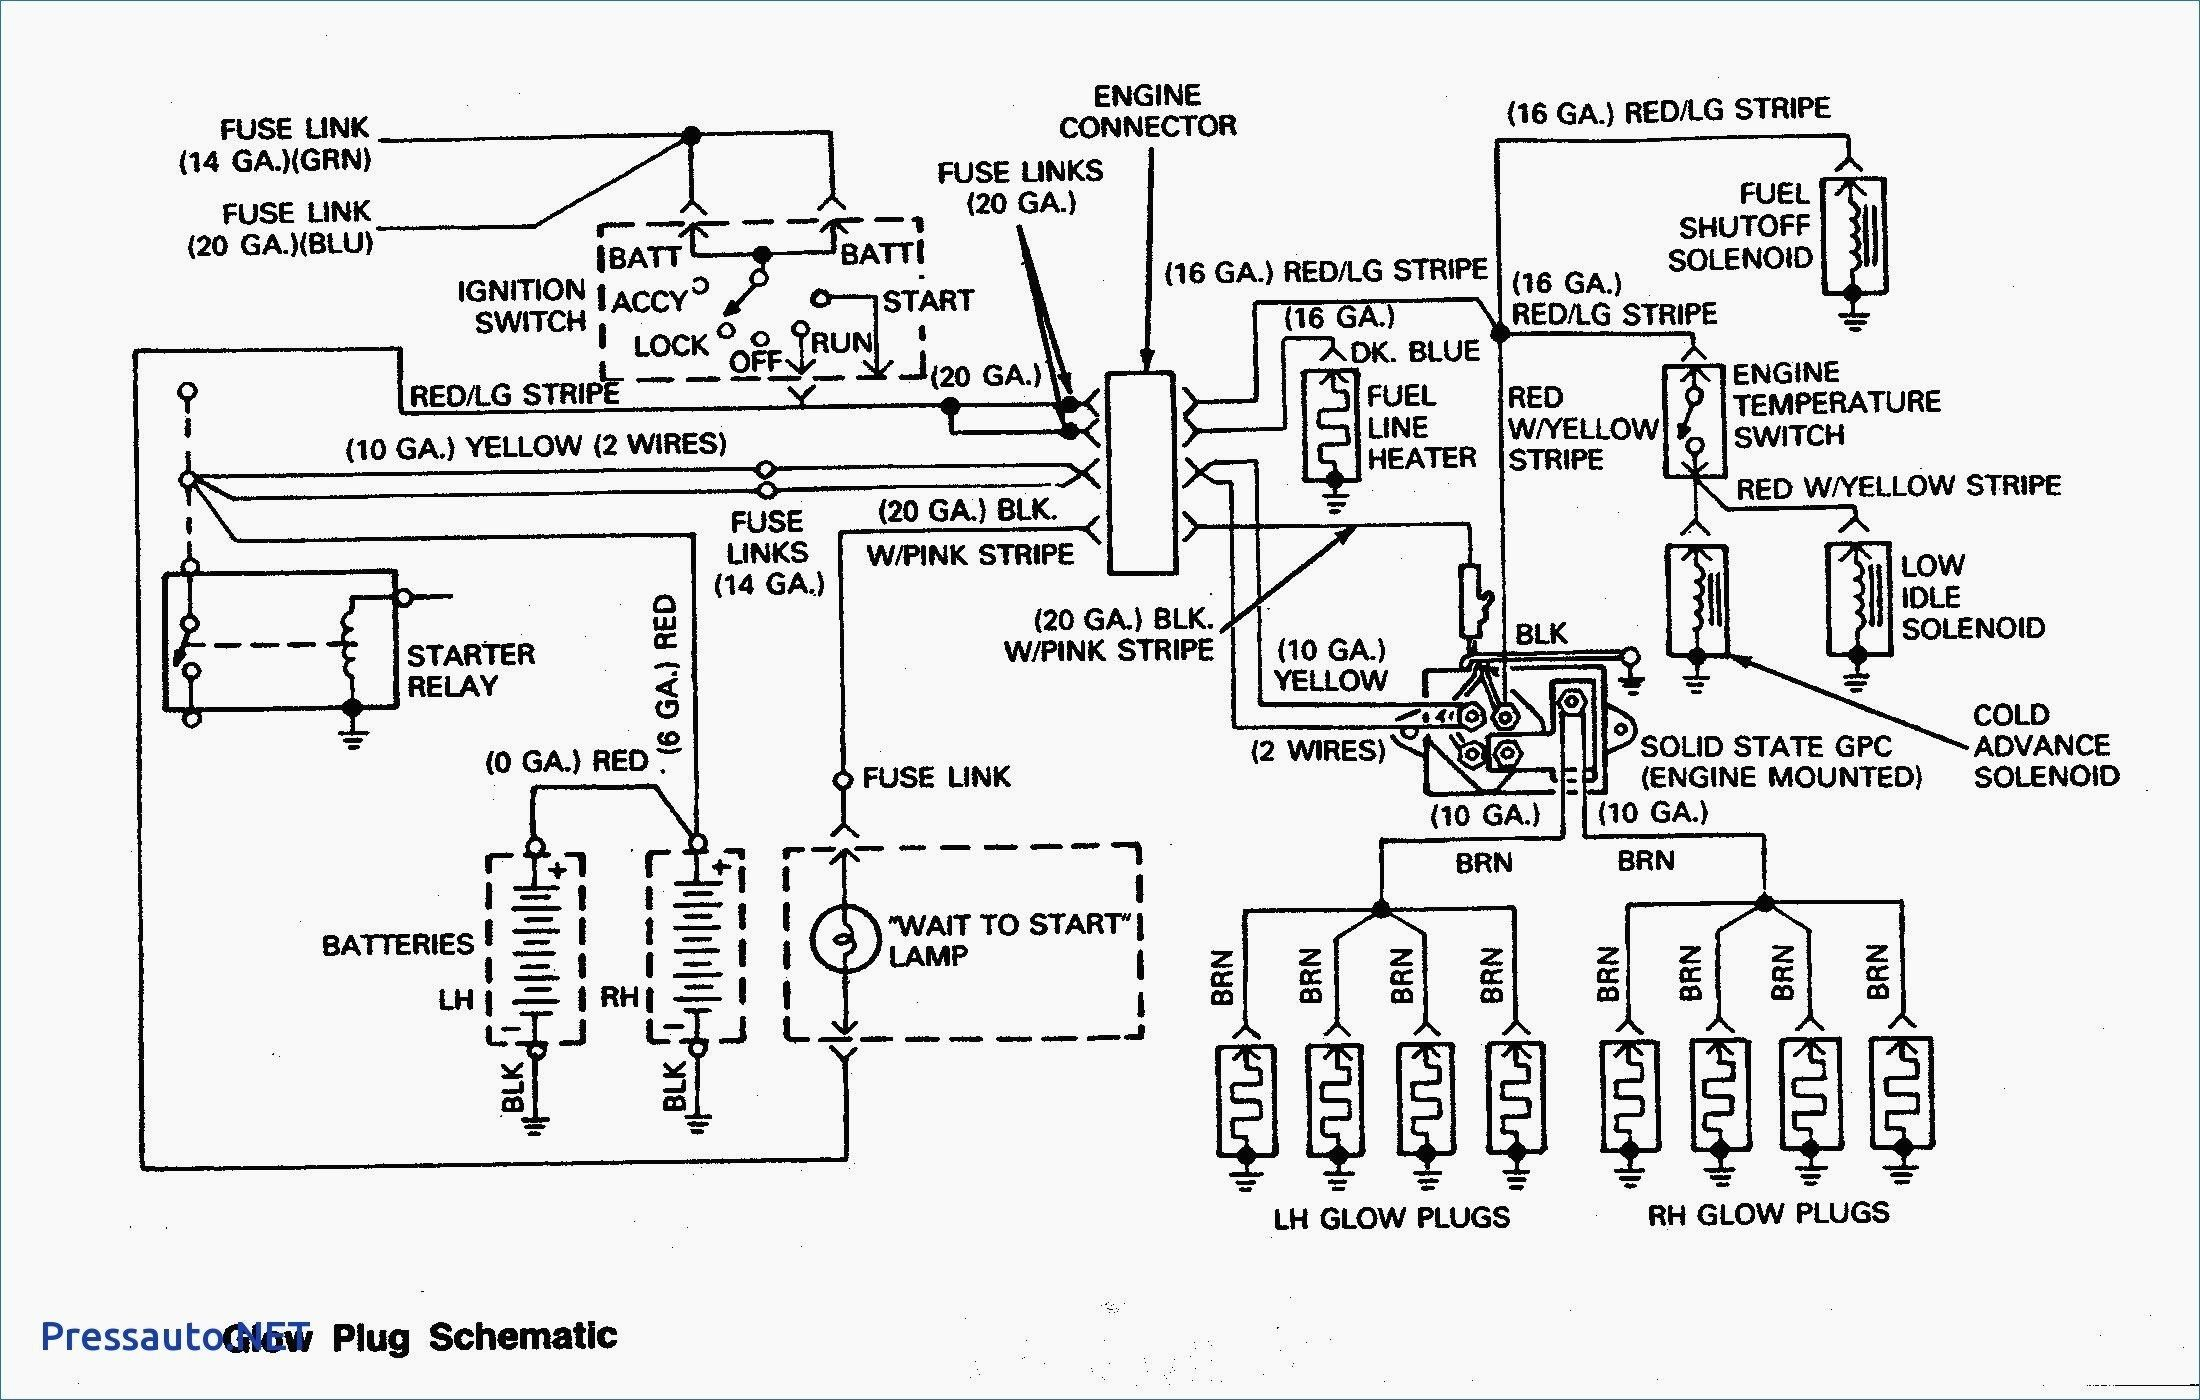 7.3 Idi Glow Plug Relay Wiring Diagram Archives - Kobecityinfo regarding  7.3 Idi Glow Plug Controller Wiring Diagram | Engine tune, Engineering,  Diagram